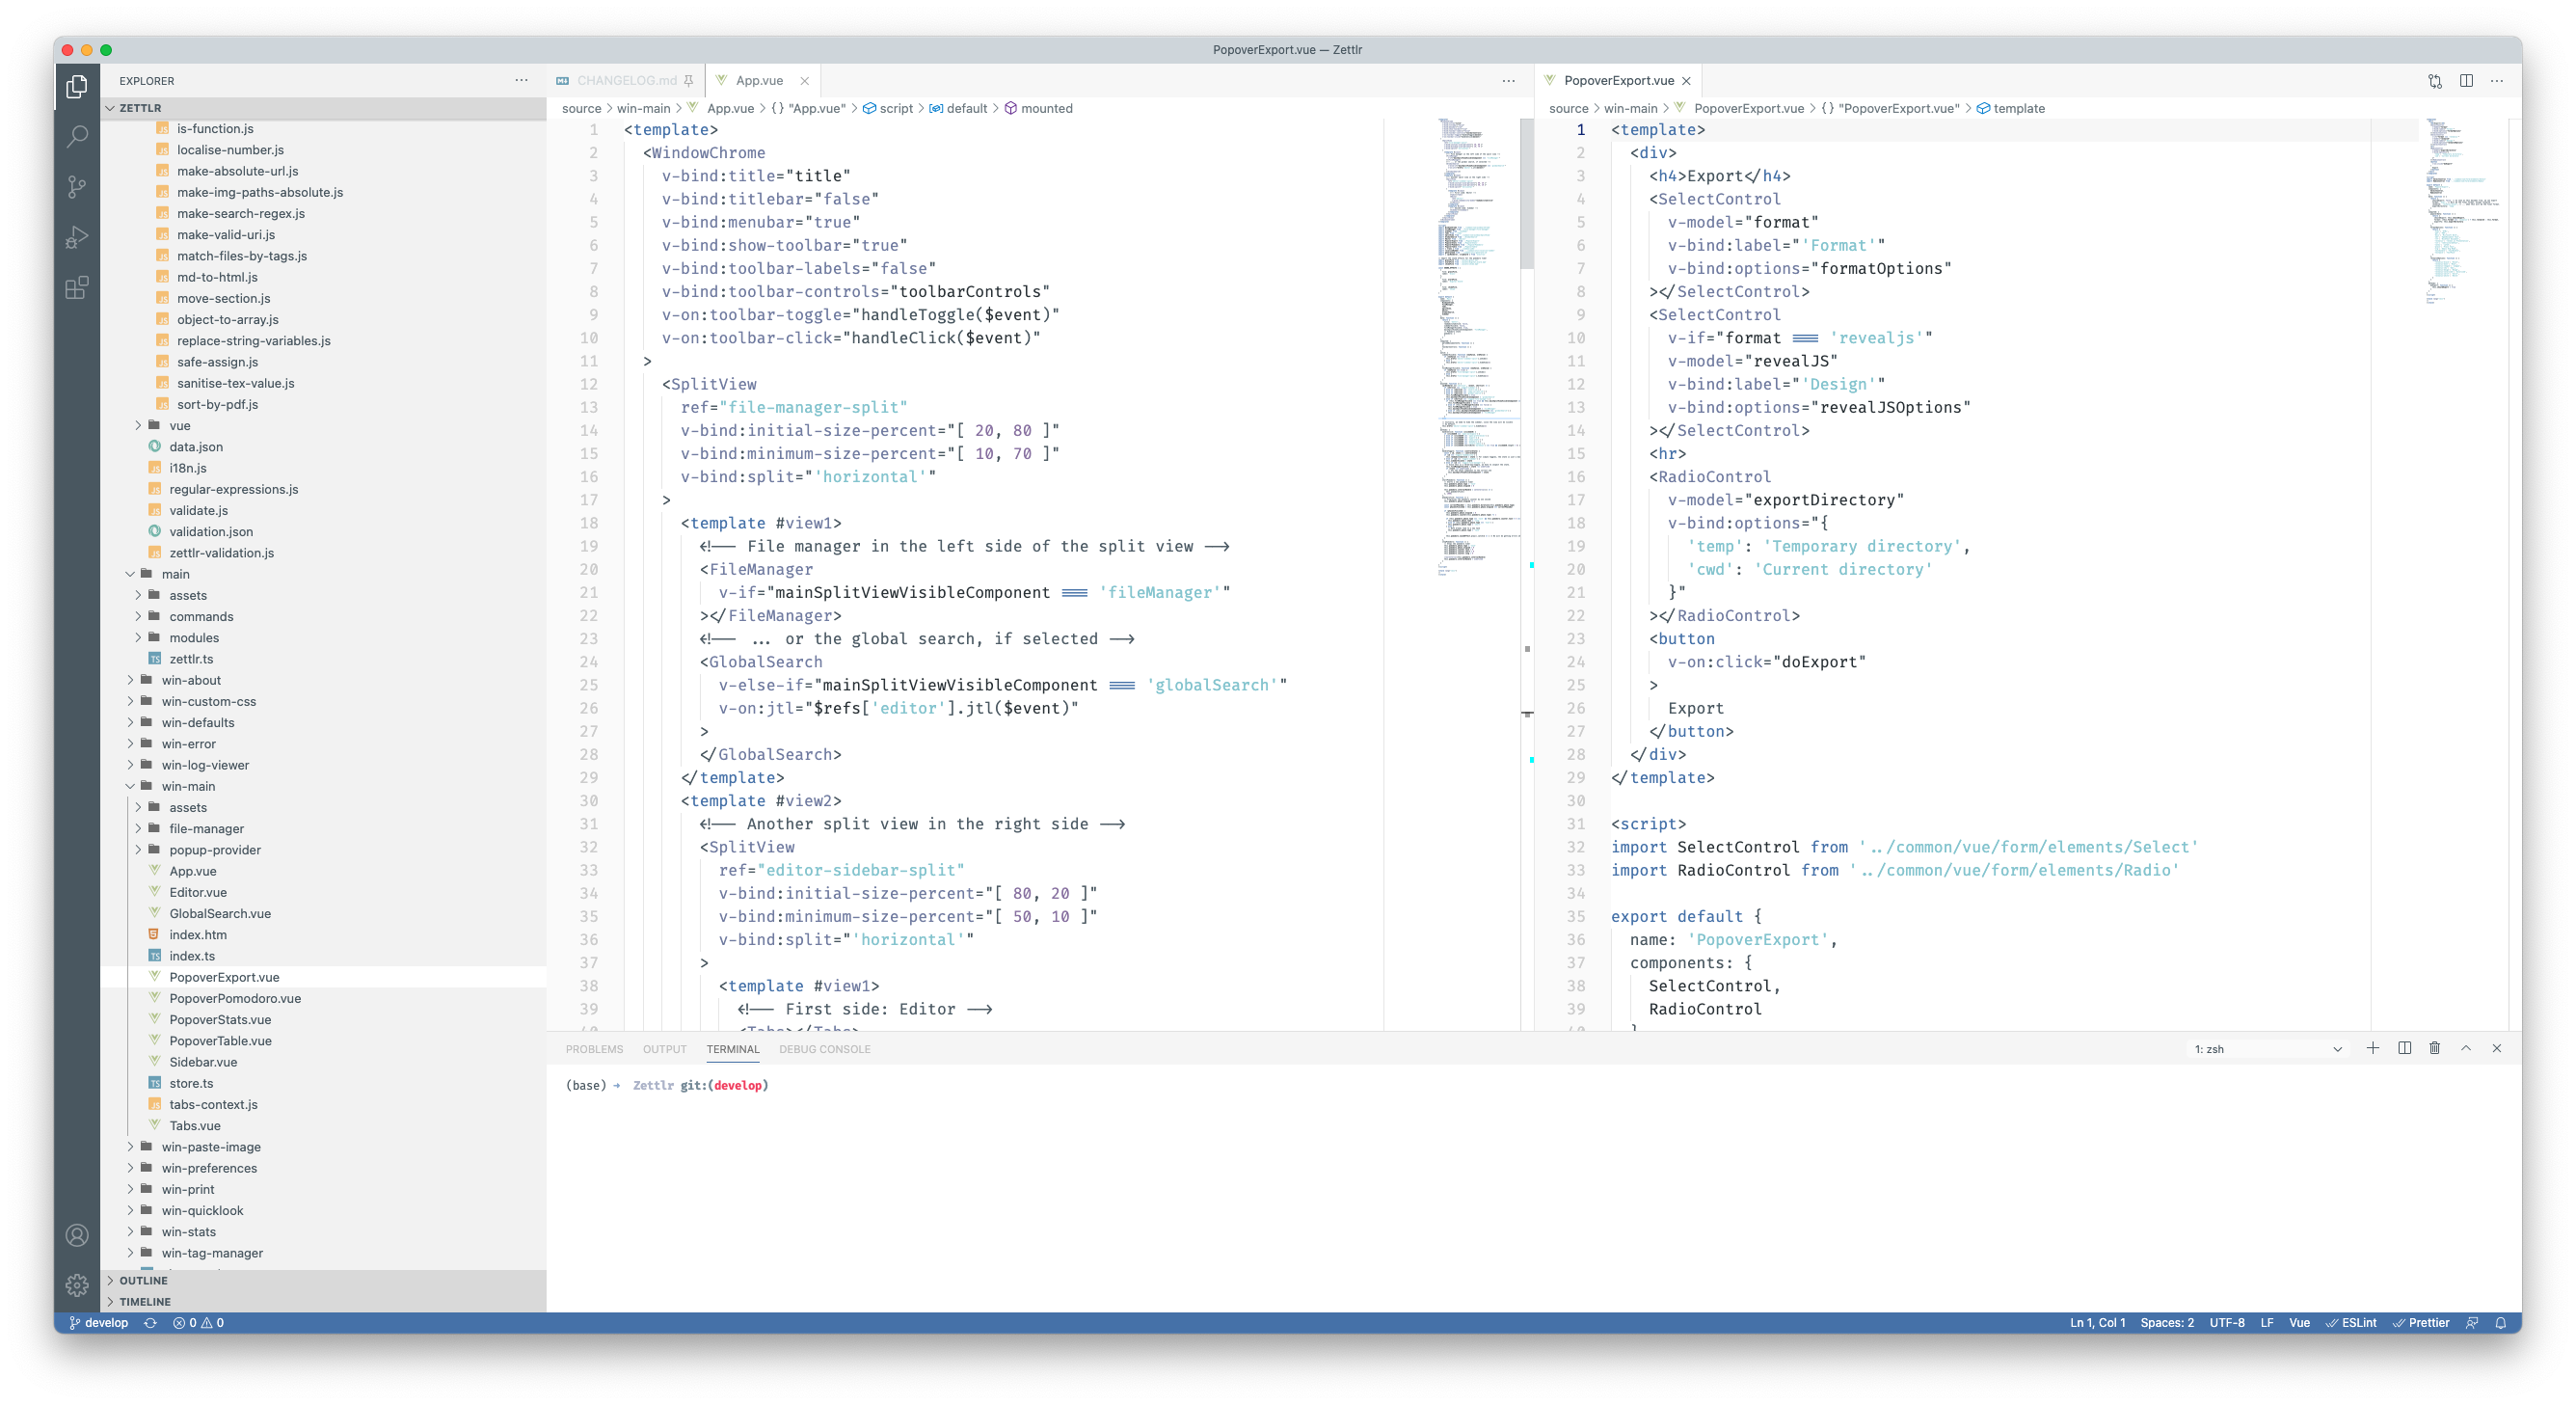 VS Code open with Zettlr's repository loaded